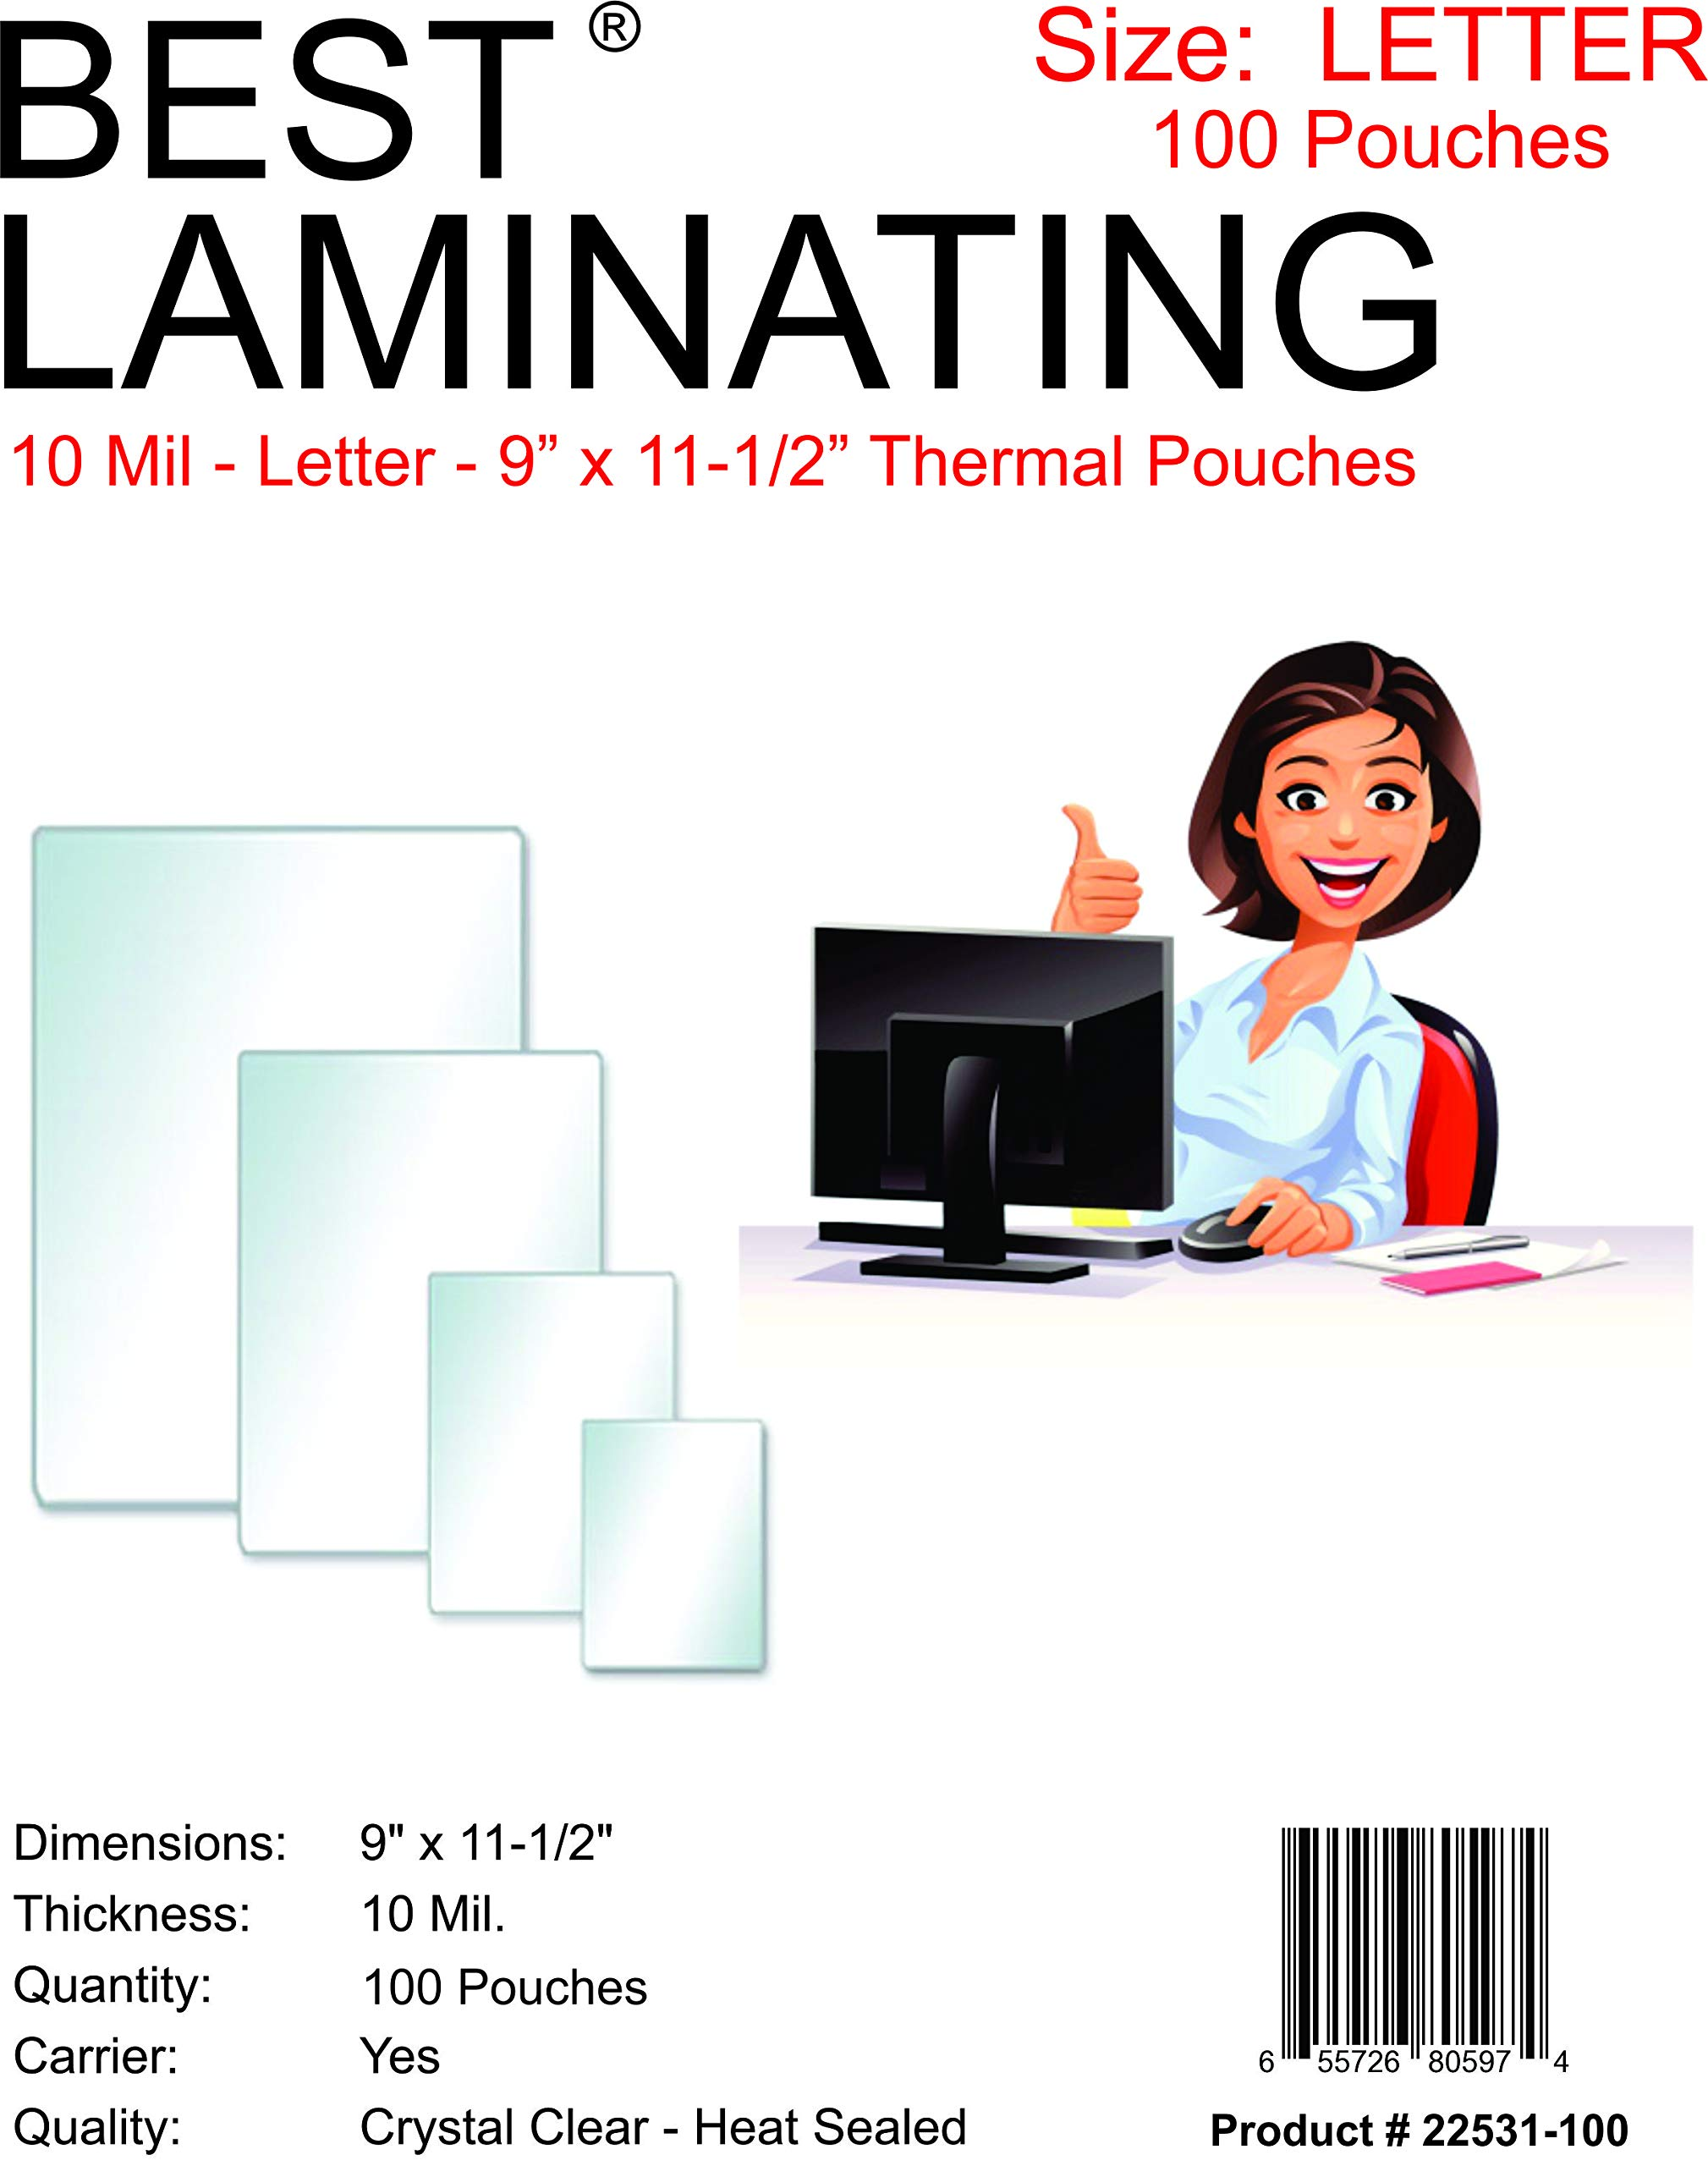 Best Laminating - 10 Mil Clear Letter Size Thermal Laminating Pouches - 9 X 11.5 - Qty 100